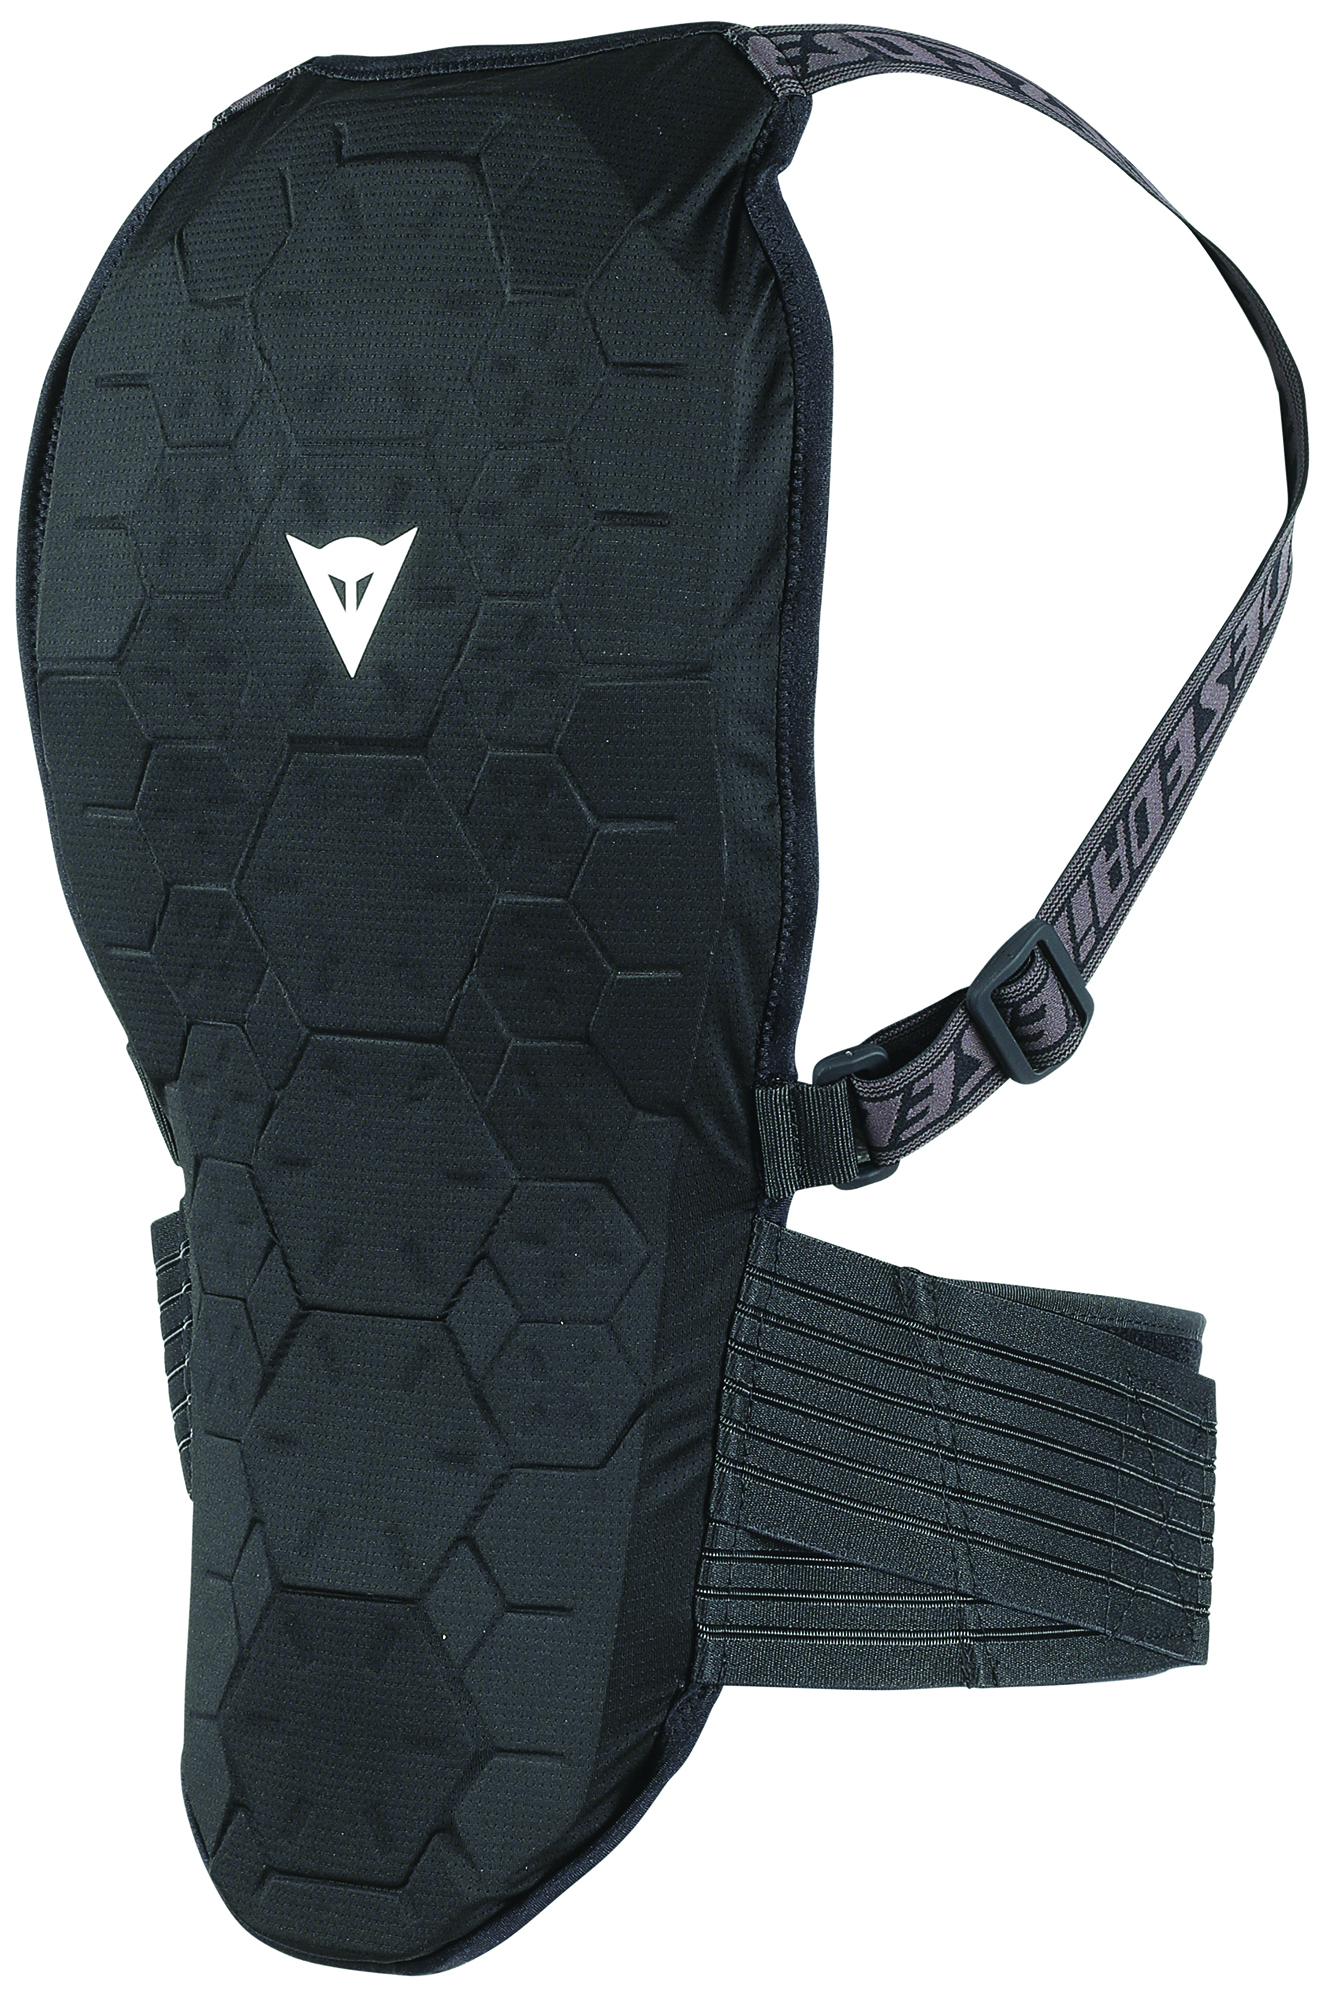 Dainese Защита спины Flexagon Back Protector